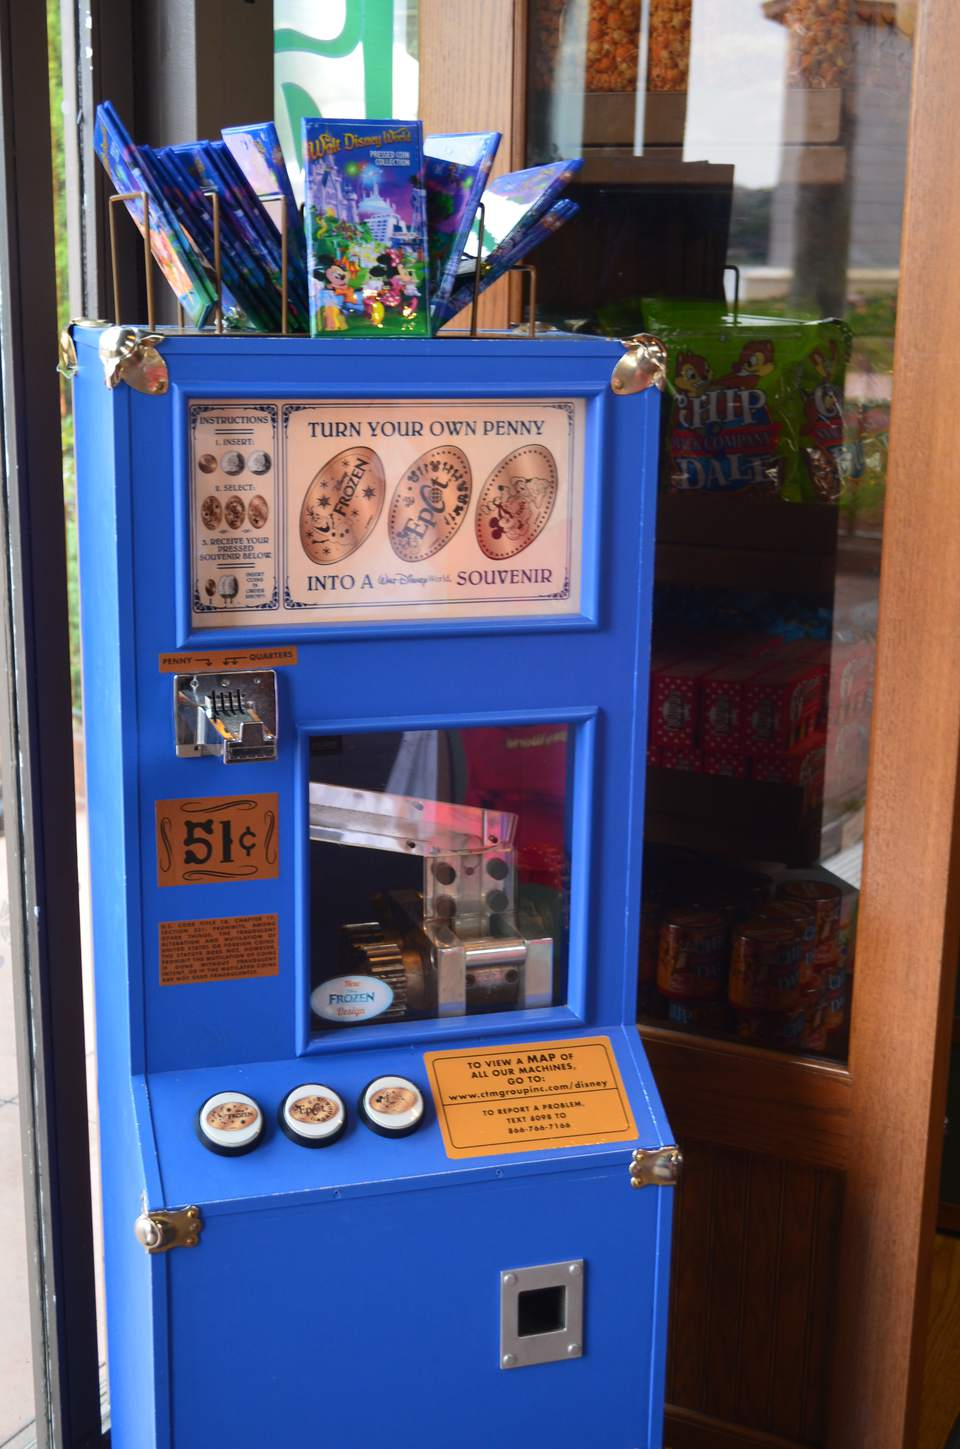 Pressed Penny machine at Disney World